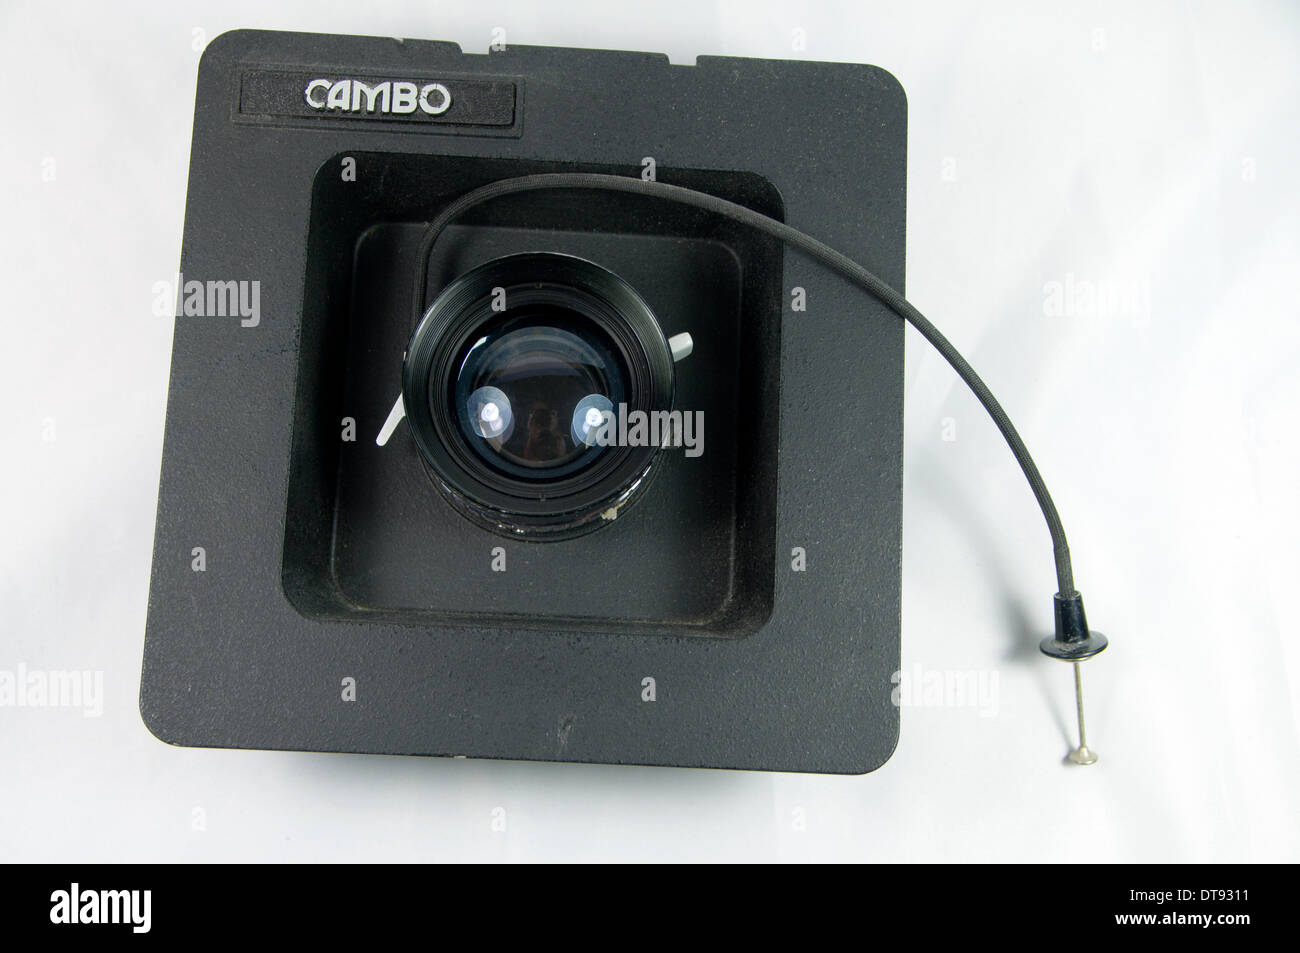 150mm large format photographic lens in recessed Cambo lens panel. - Stock Image